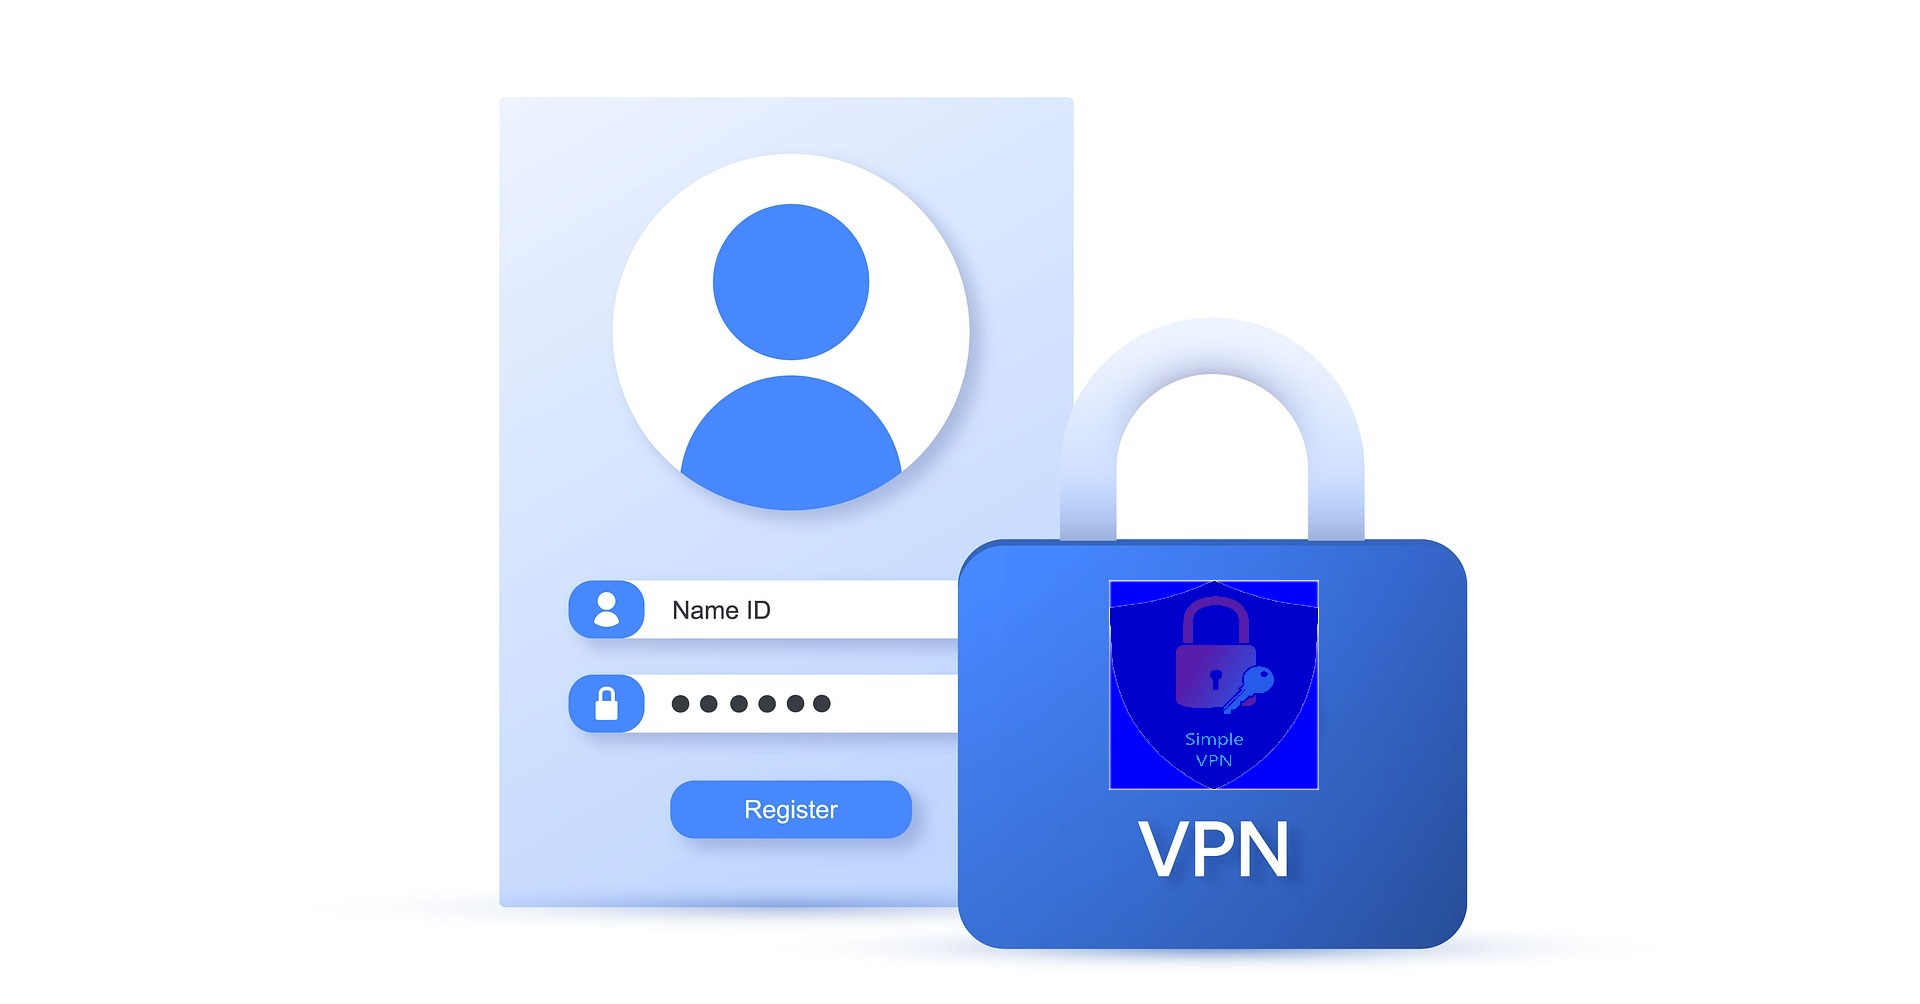 Control your use of Simple VPN. Change your Usernames and passwords